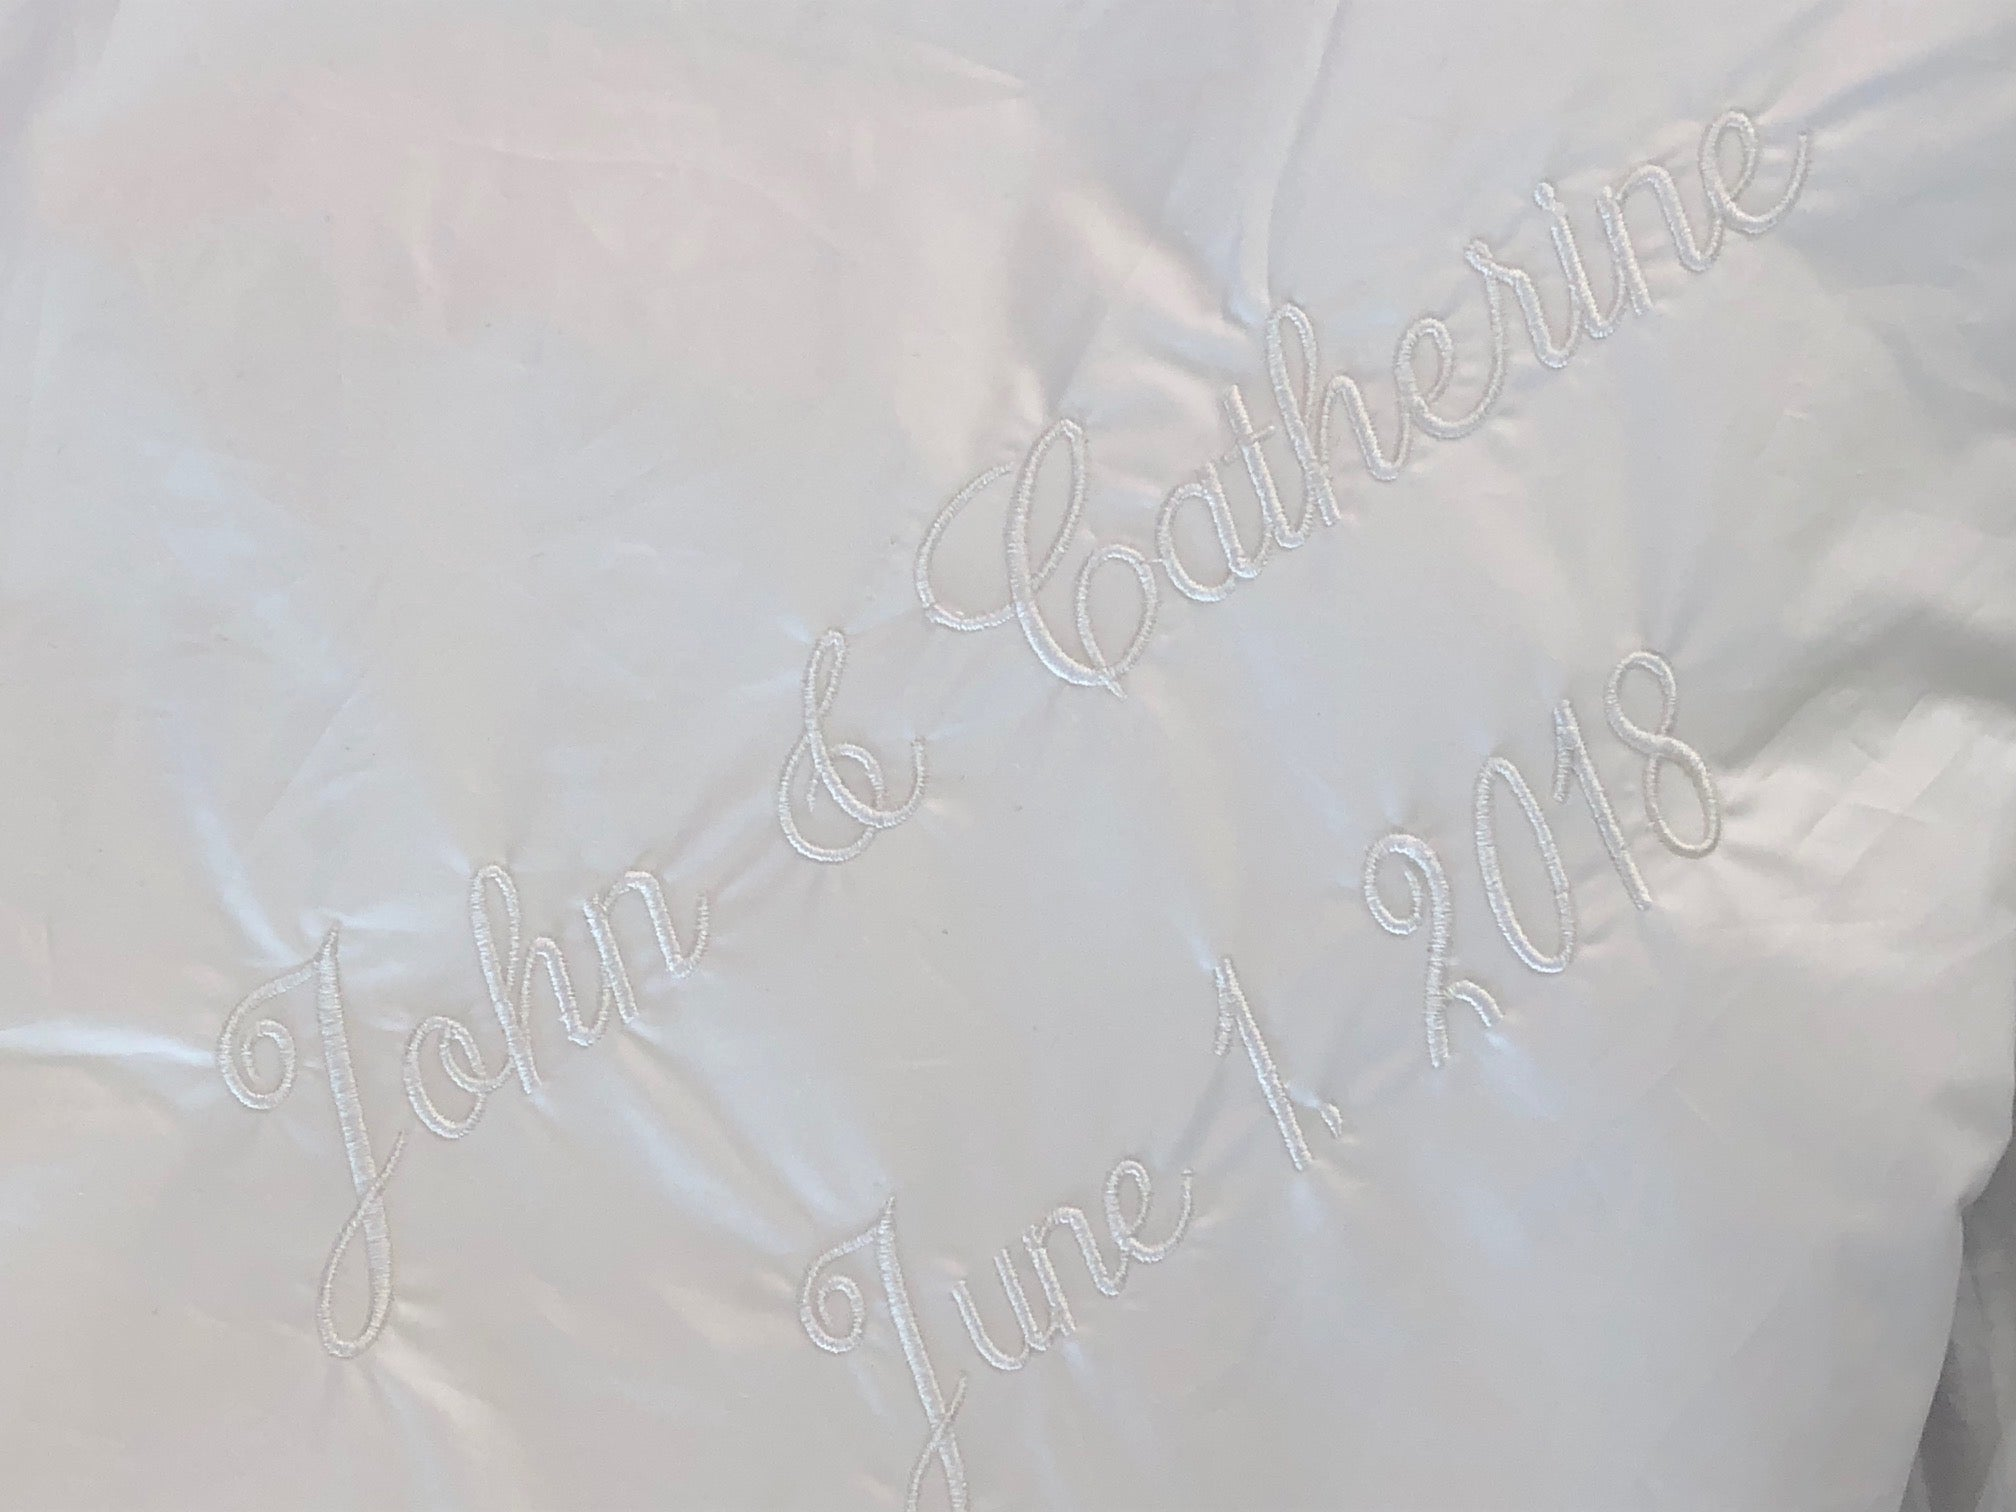 Embroidery on duvet with names and wedding date